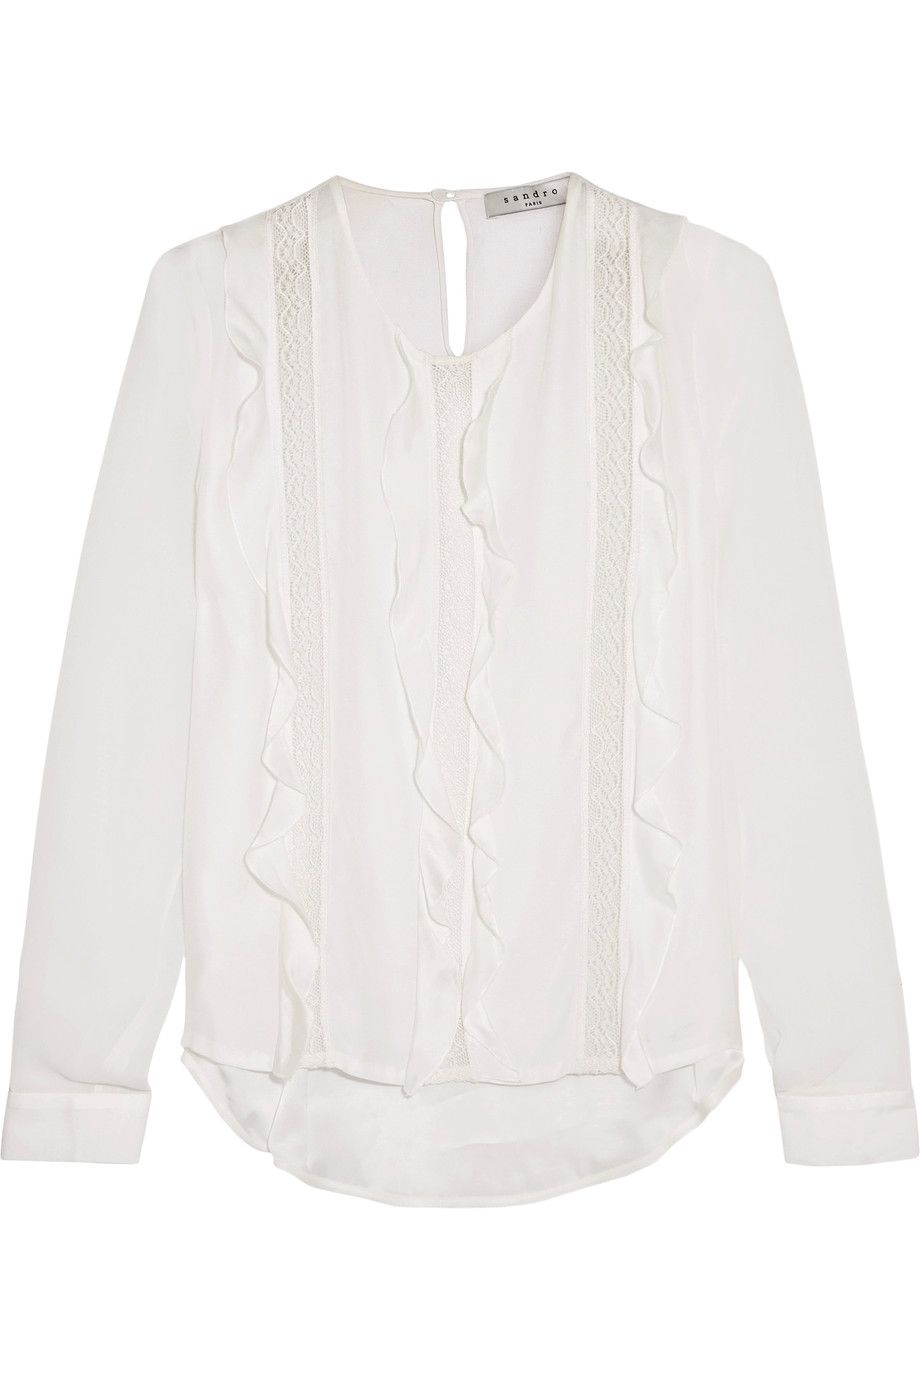 SANDRO Esty ruffled chiffon-paneled lace-trimmed jersey top. #sandro #cloth #top